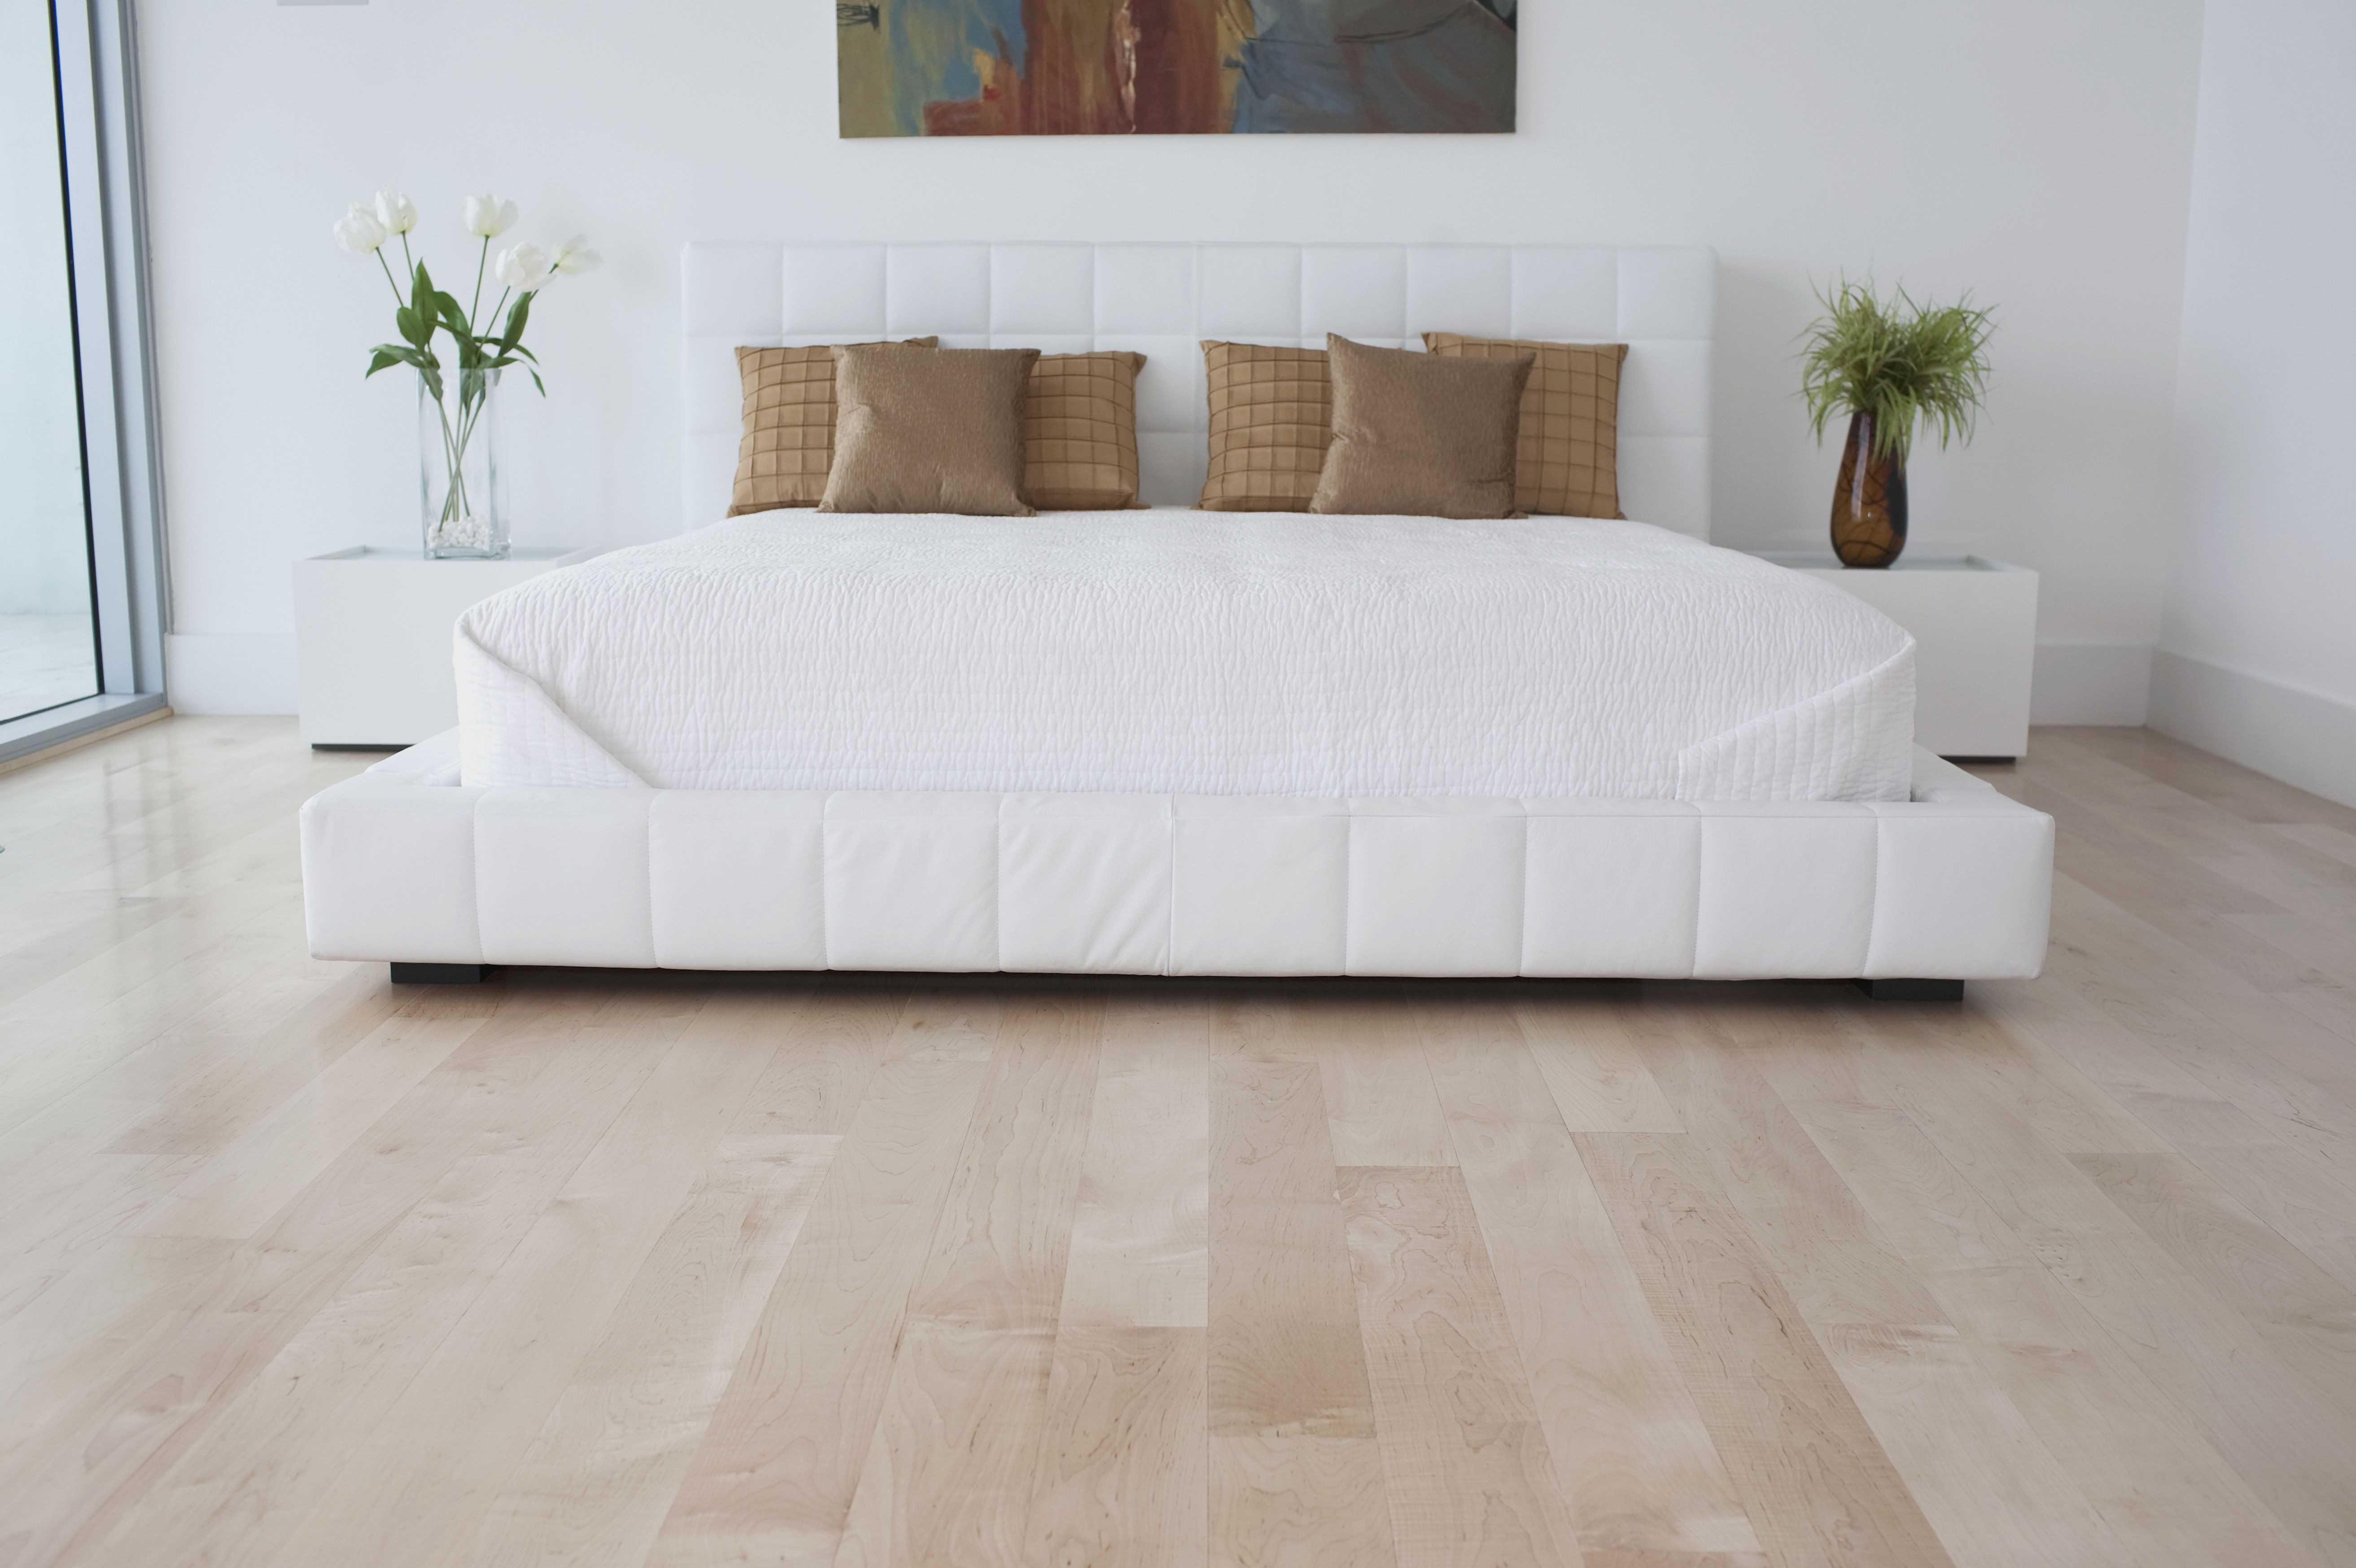 hardwood floor color choices of 5 best bedroom flooring materials pertaining to interiors of a bedroom 126171674 57be063d3df78cc16e3cc6cf